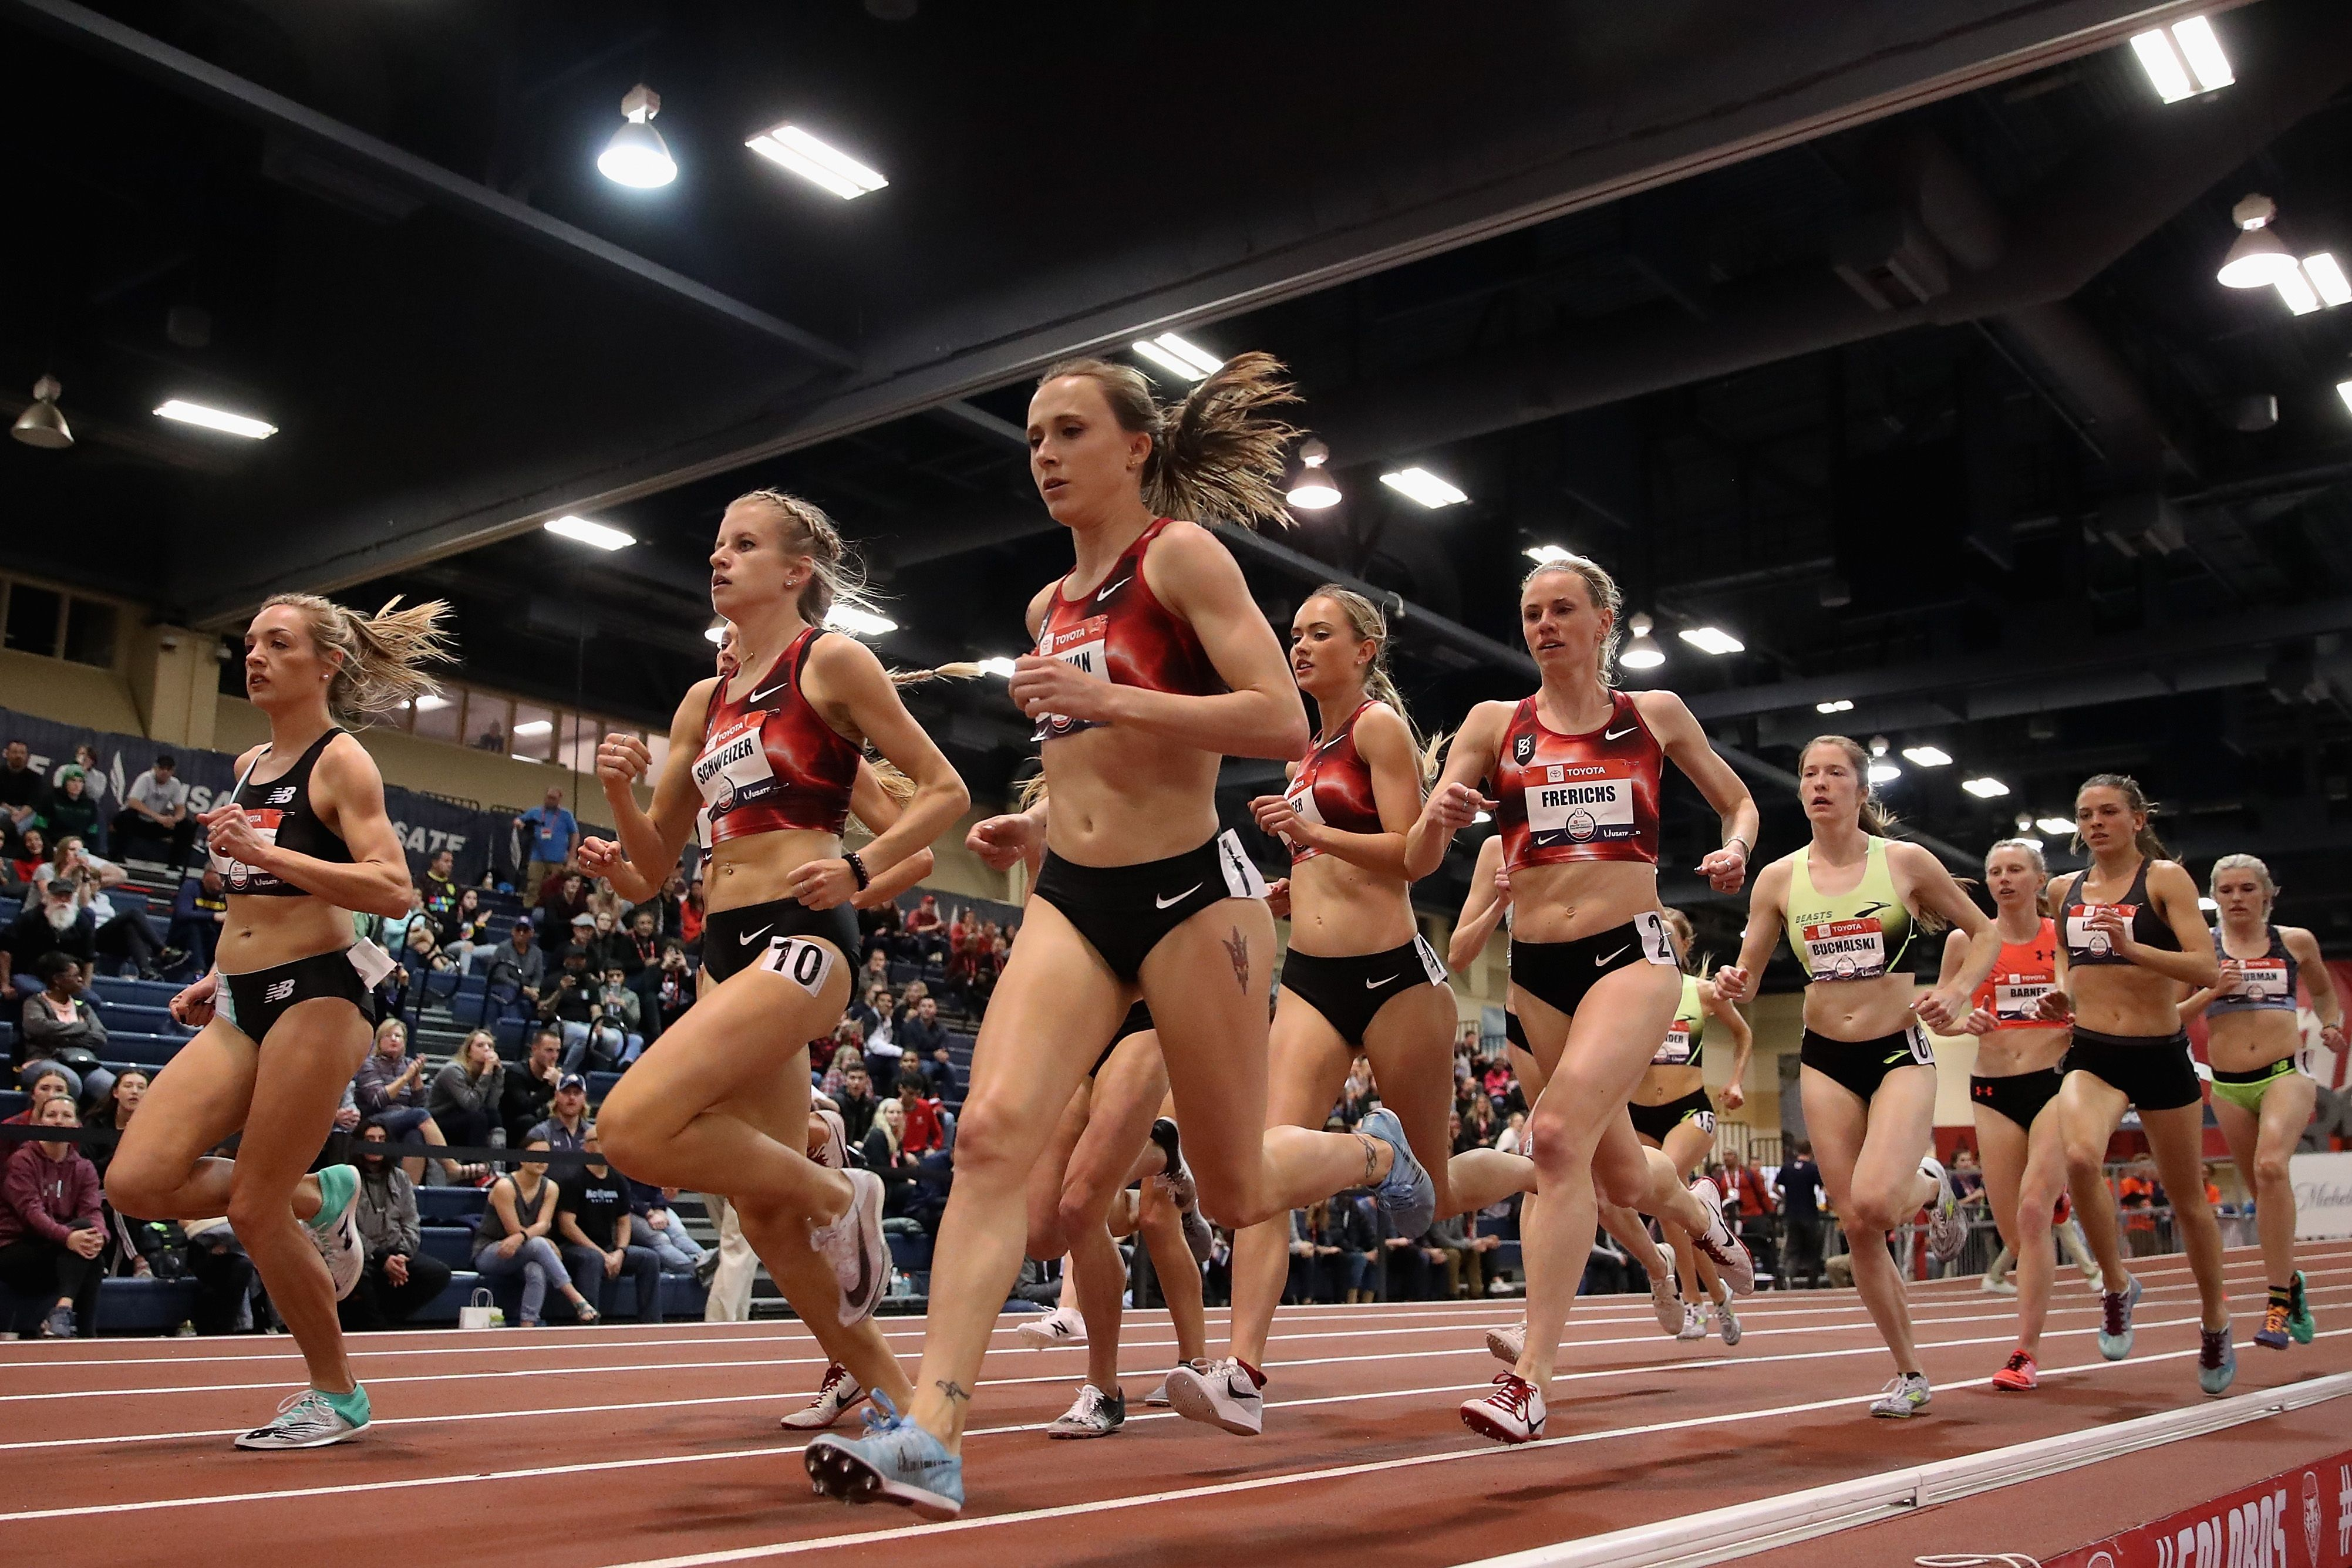 Pro Running Groups Are Social Distancing